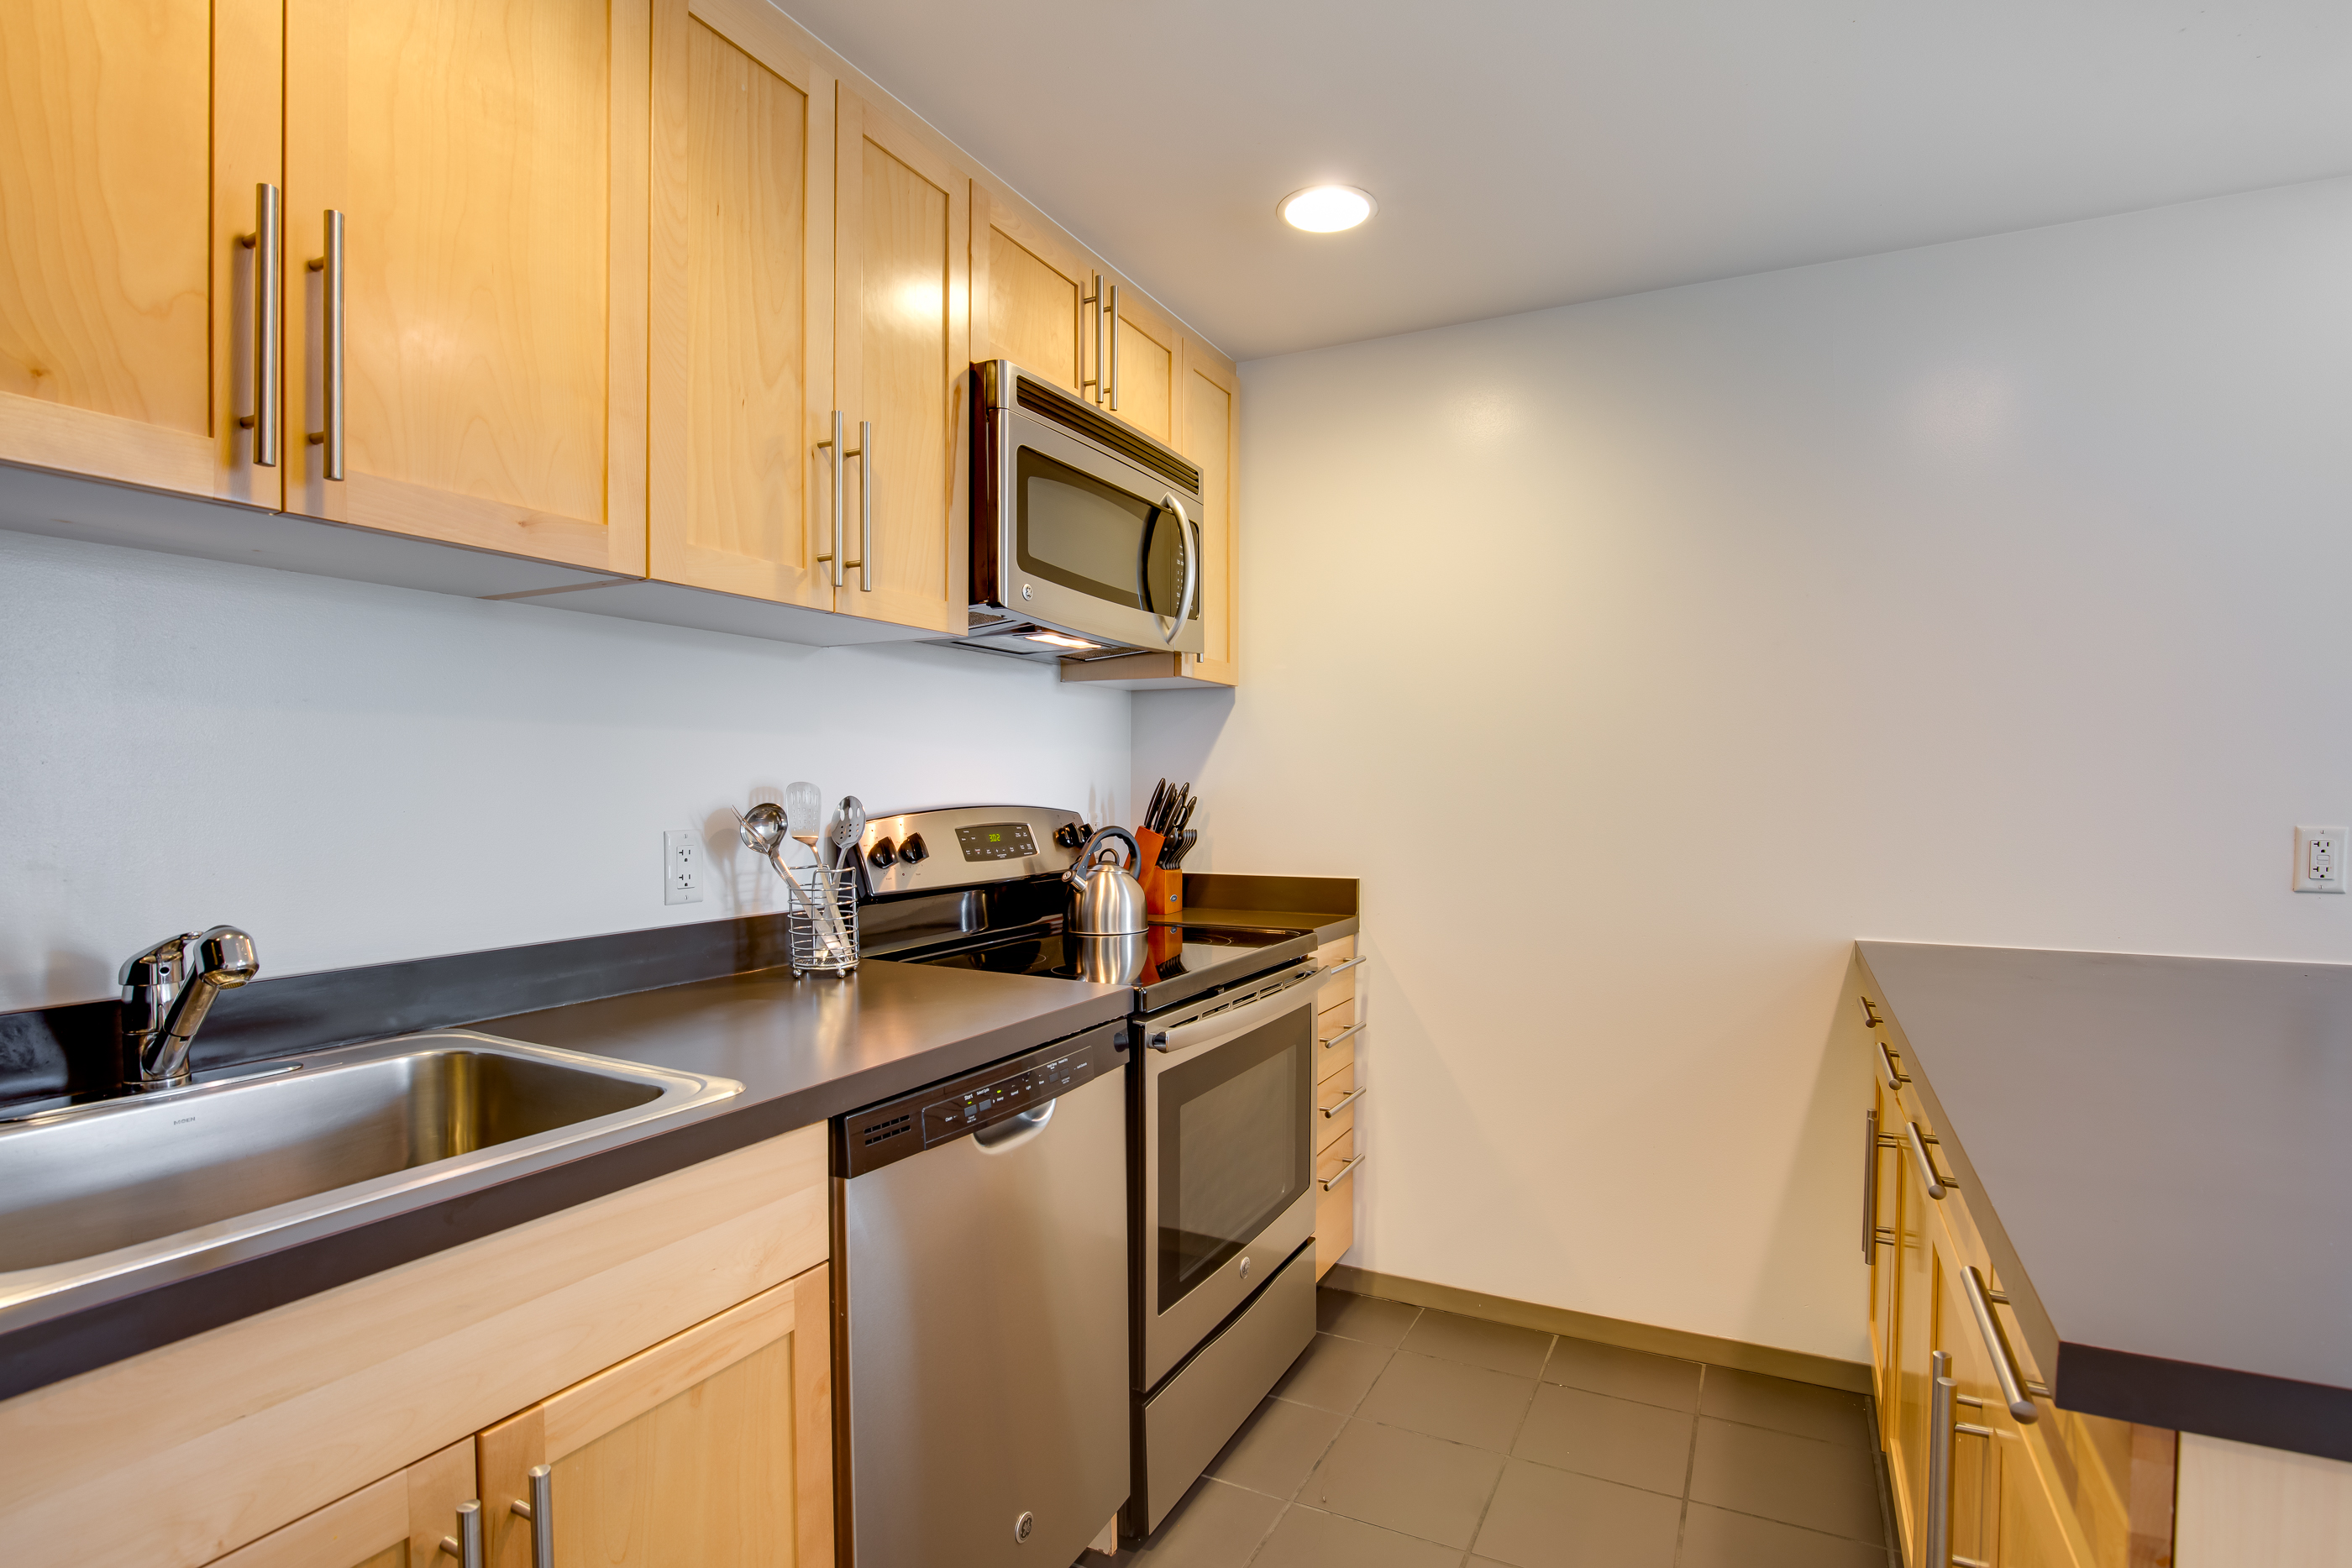 image 5 furnished 2 bedroom Apartment for rent in Cambridge, Boston Area